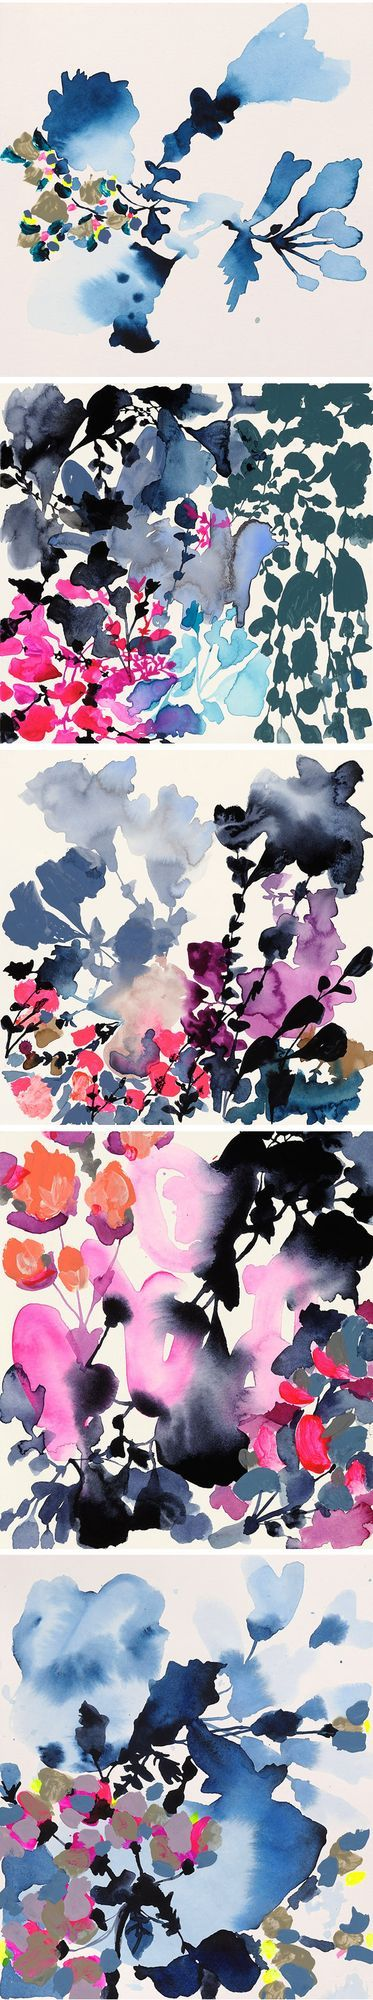 Ok, those color palettes are killing me. Neon and navy? Gorgeous! These stunning, modern florals are the work of American artist Jen Garrido… and I want allllllll of them.